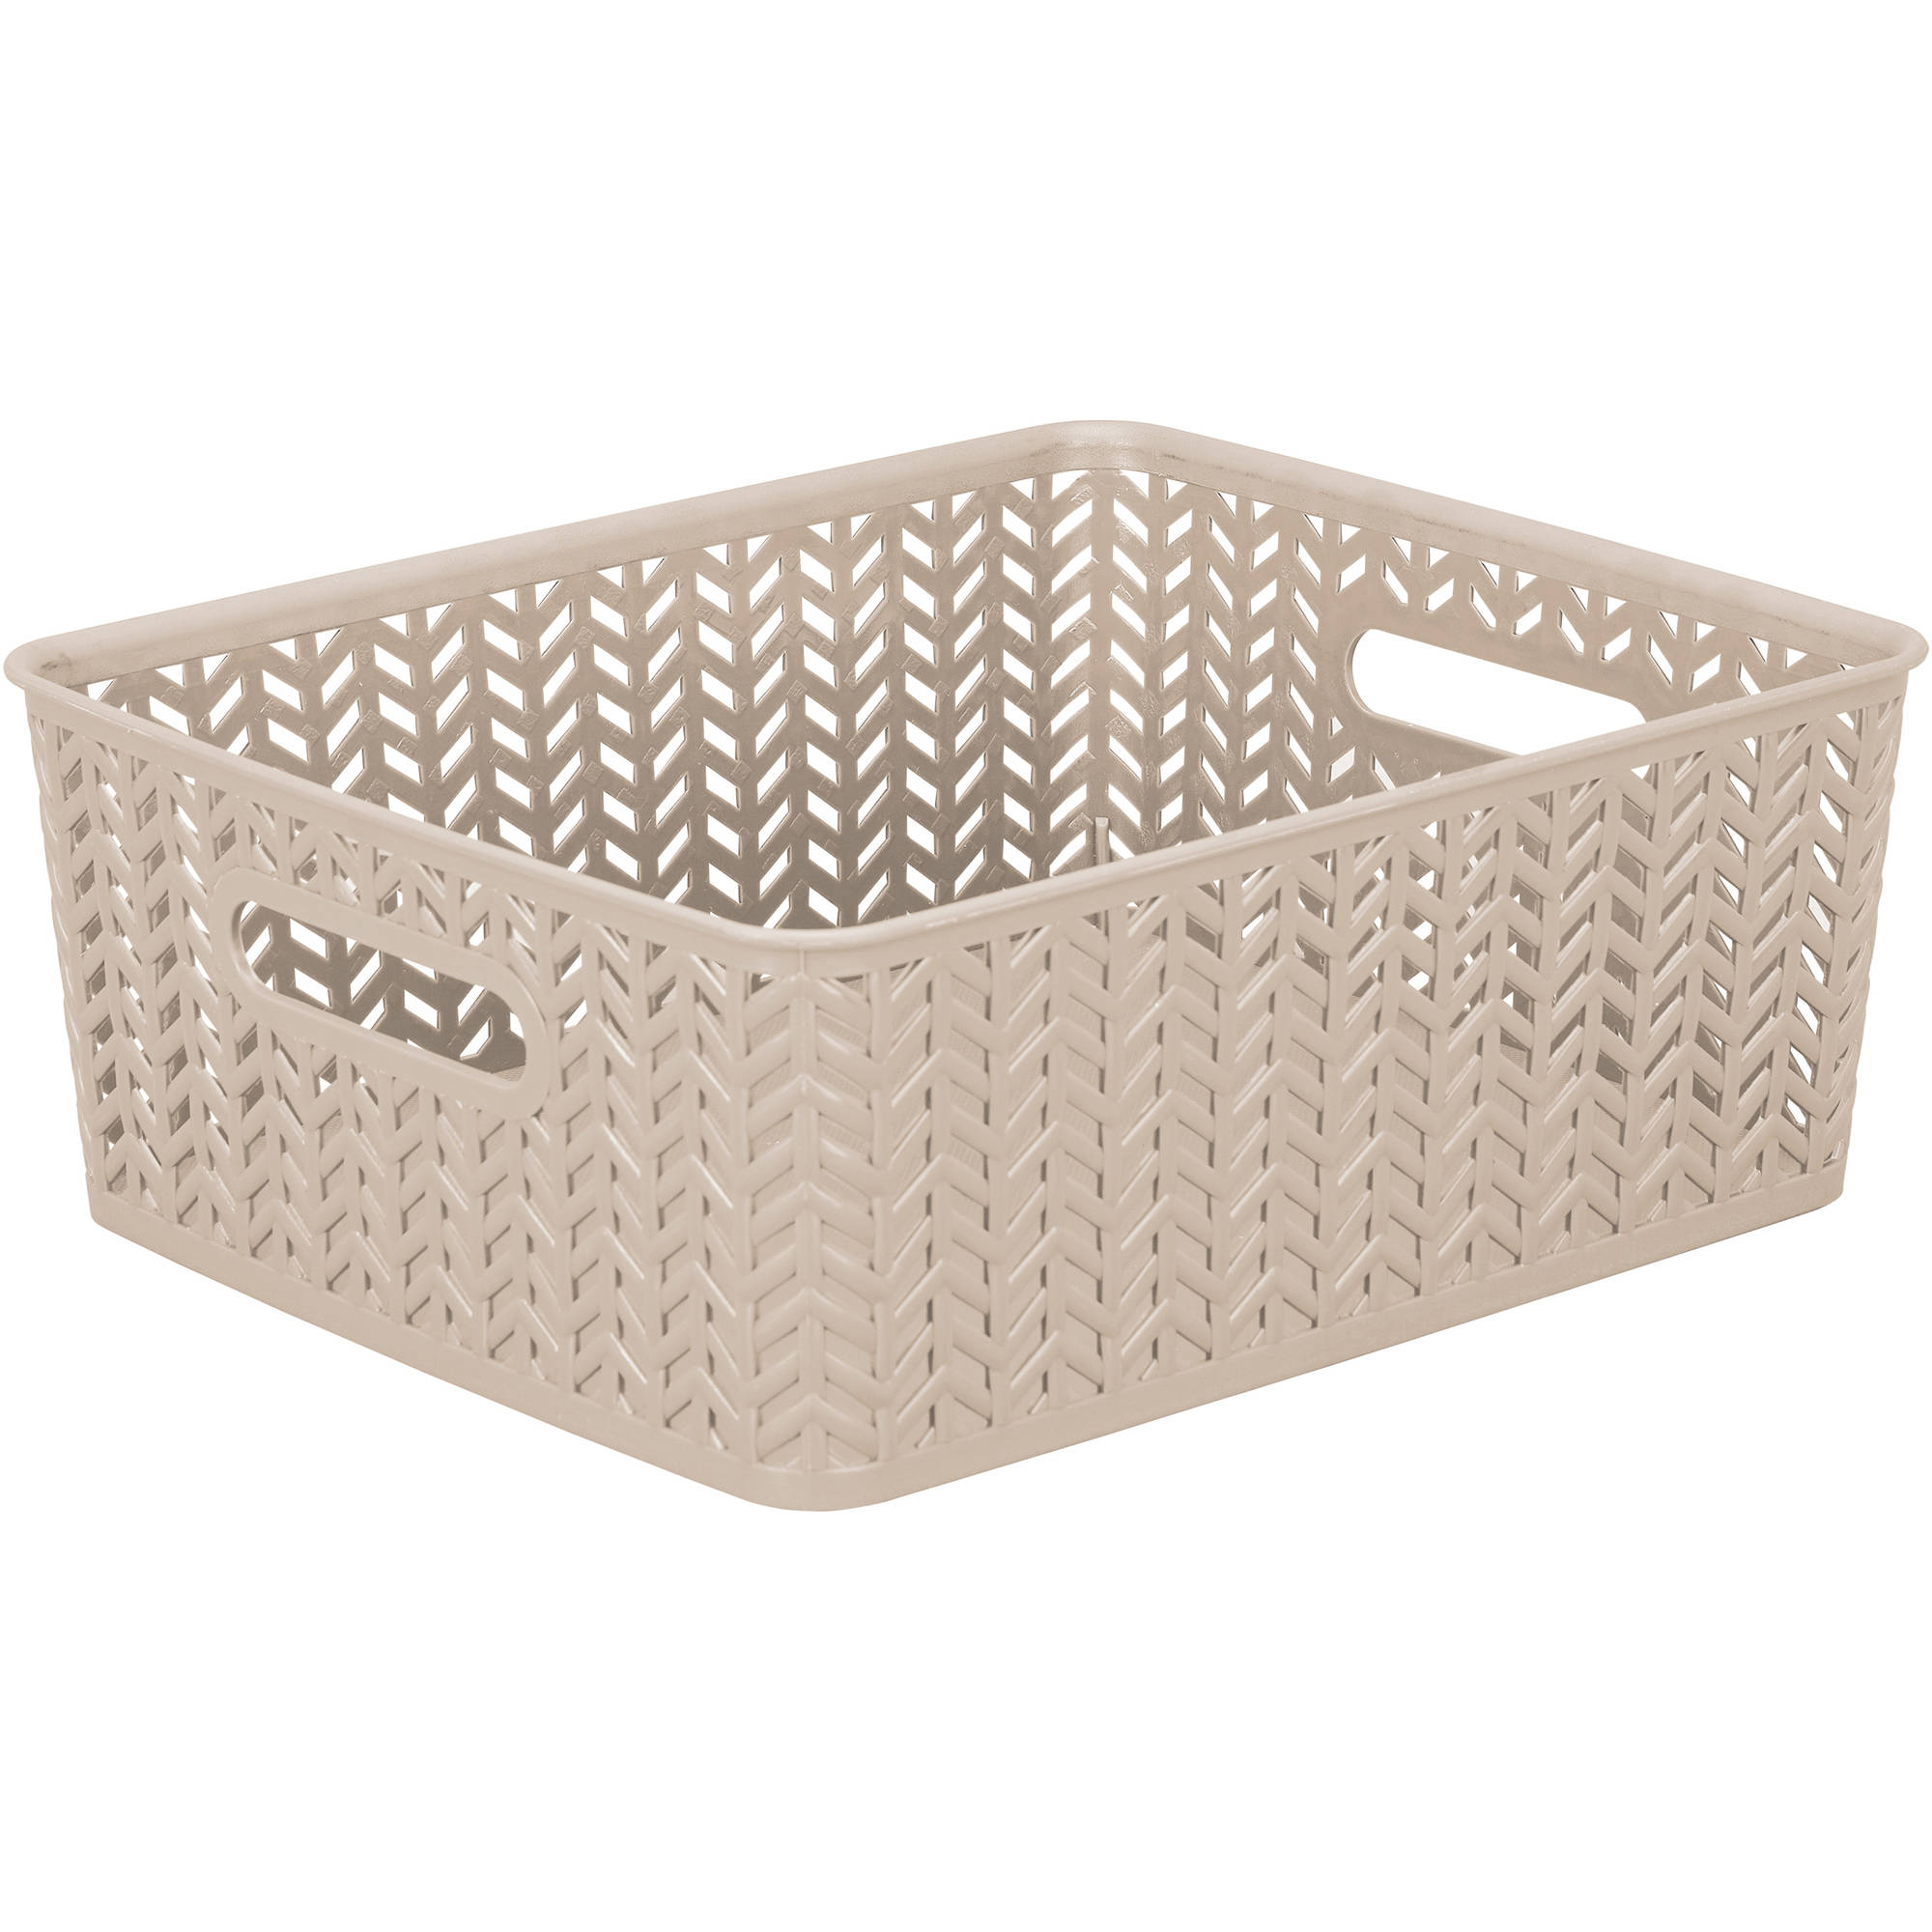 "Resin Herringbone Storage Tote, Medium, 14"" x 11.5"" x 5.15"""